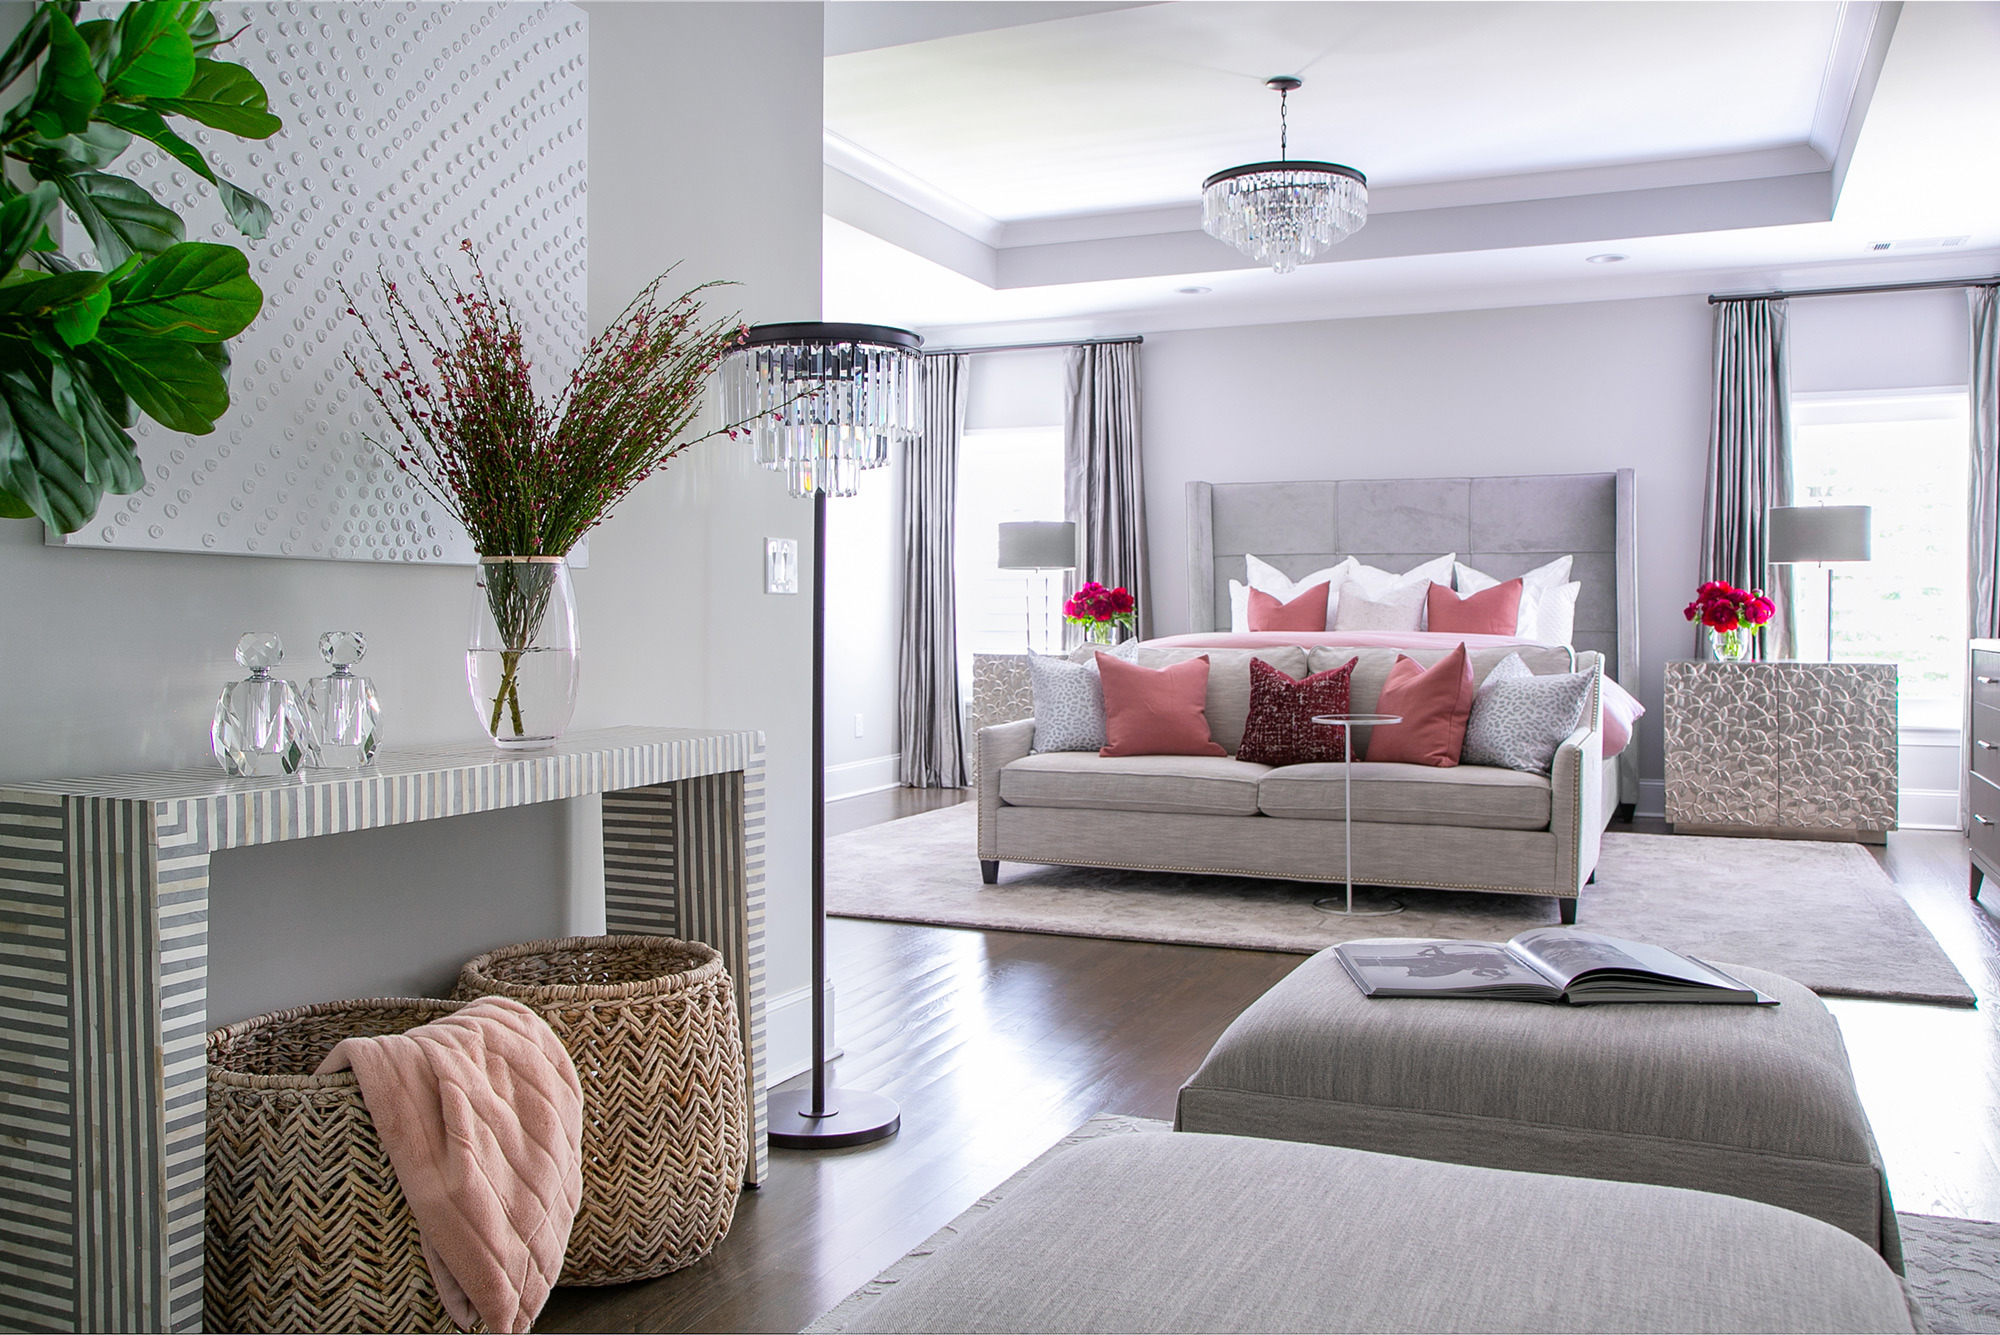 Chic, contemporary master bedroom with grey and dusty rose accents